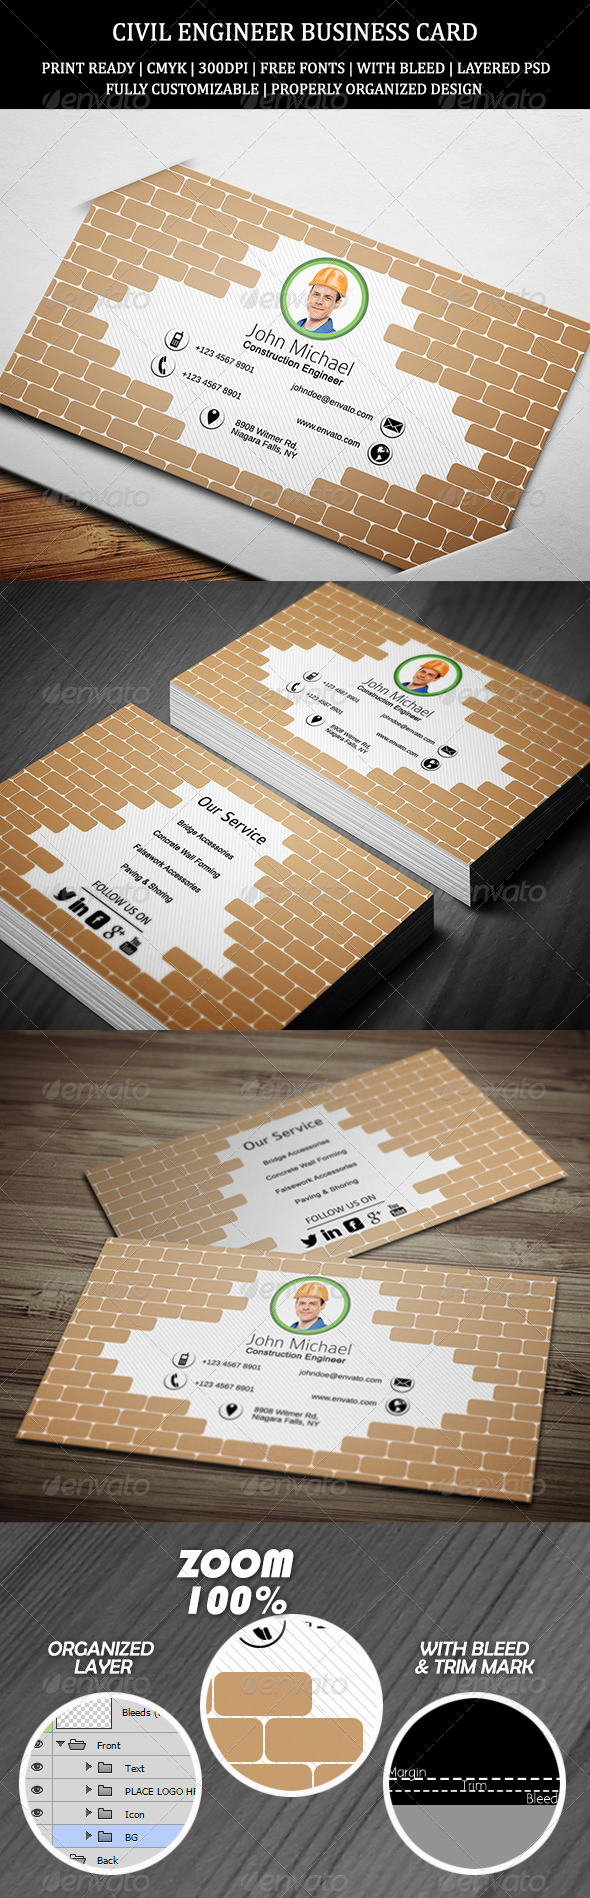 Civil Engineer Business Card 1